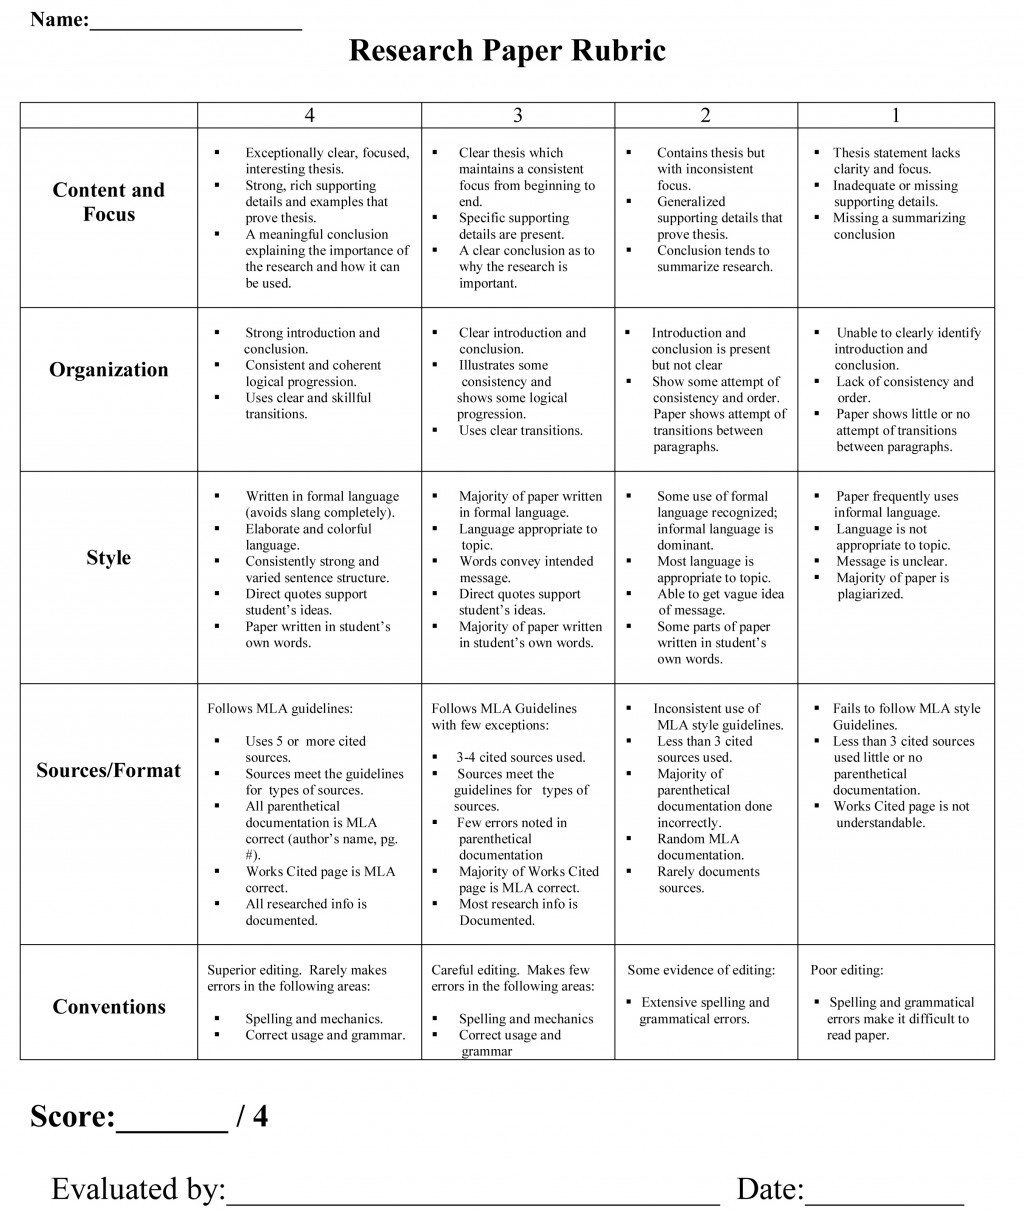 017 Research Paper Rubric Free Sample Online Stirring Papers Plagiarism Checker Psychology Download Large